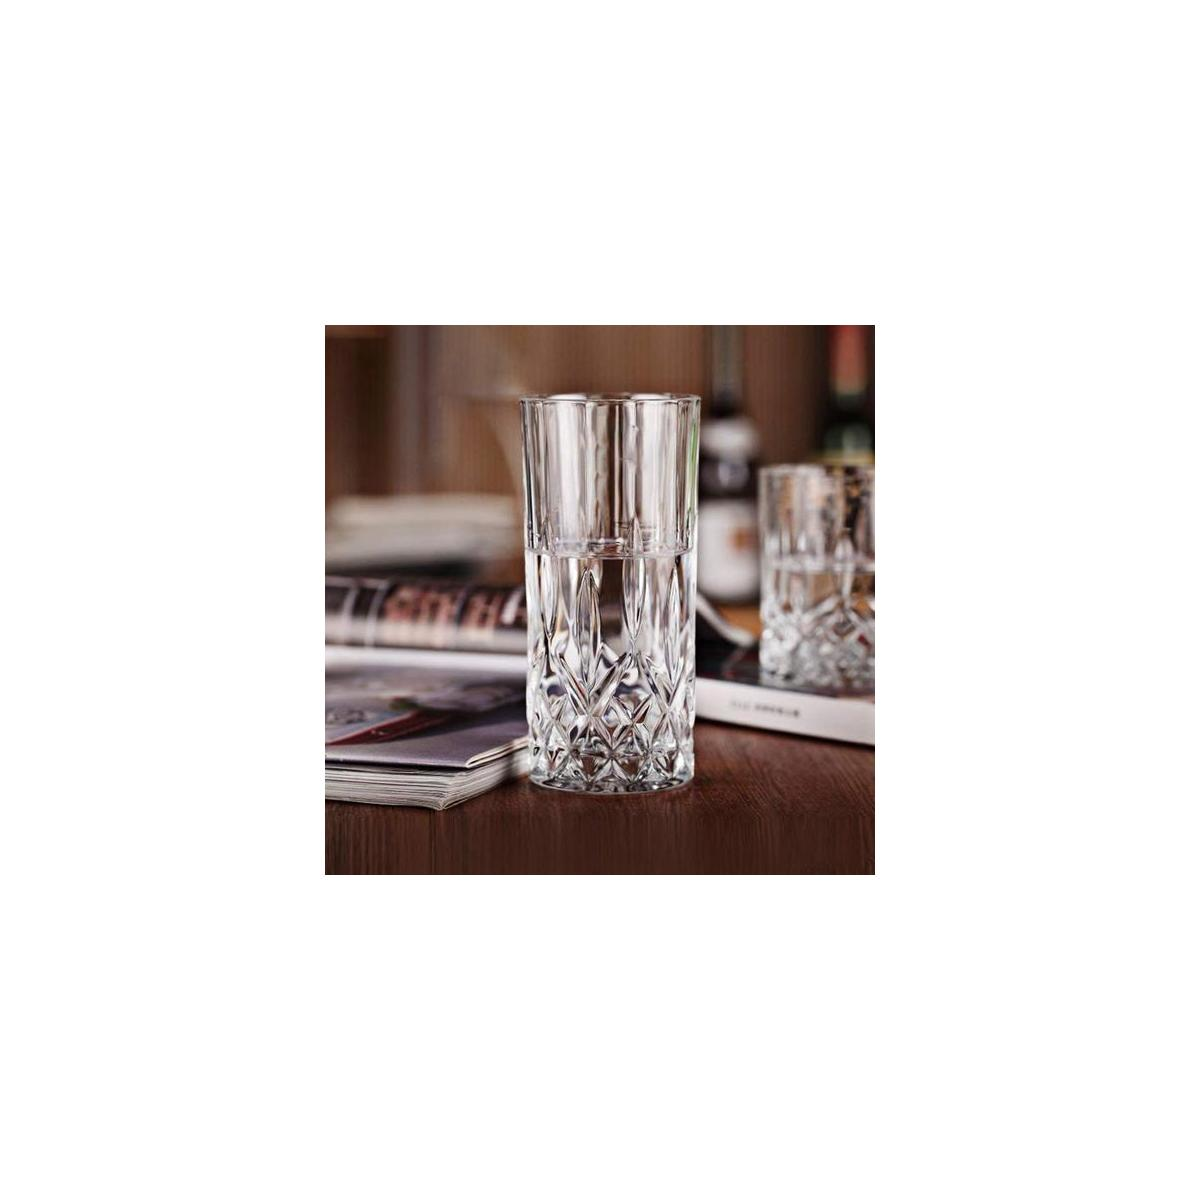 Posh Collection Crystal Highball Glasses, Glass Drinking Glasses [Set of 6] for Water, Juice, Beer, Wine, and Cocktails - Special Edition Glassware Set